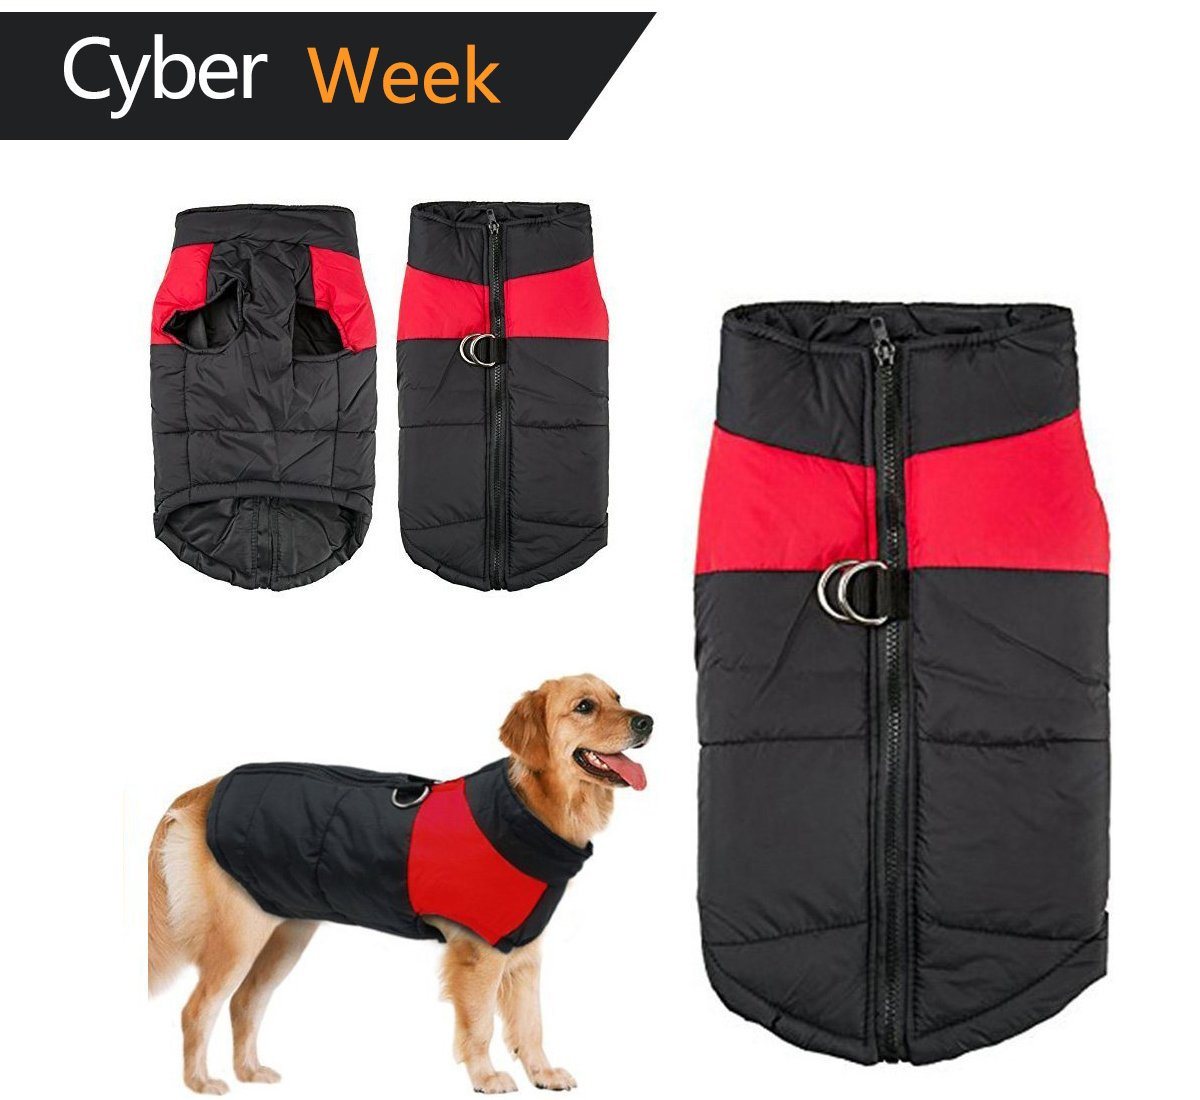 Dog Winter Coat Vest, Waterproof Clothes Jacket Fleece Warm Lined Breastplate Puffer Dog Puppy Clothes Vest for Autumn Winter (XXXL (Back:19.58inch Chest 22.22inch), Red)